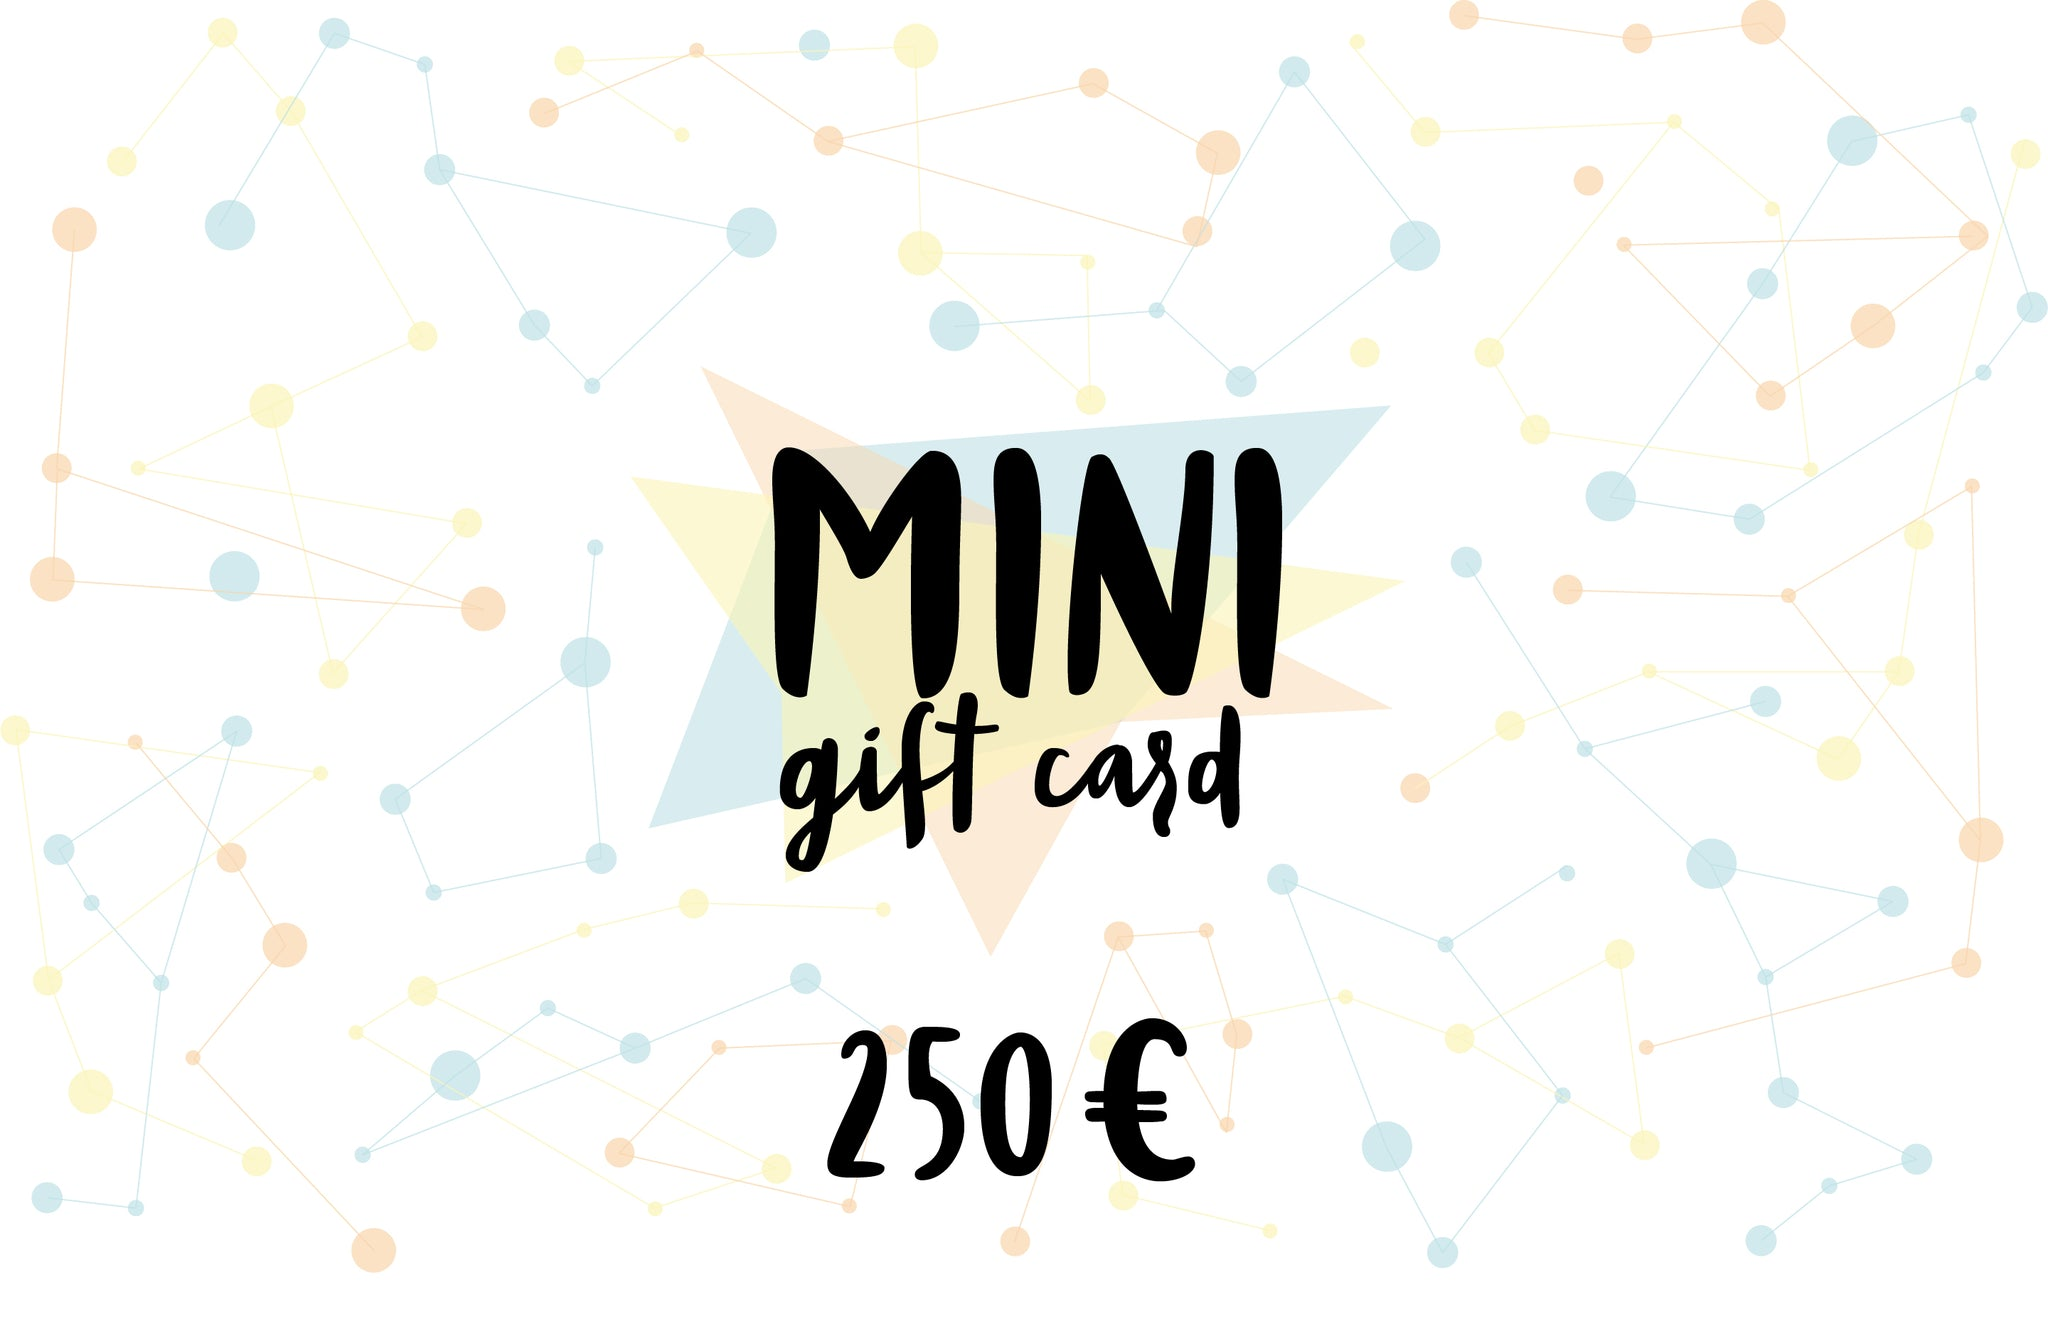 MINI Gift card, value of 250 euro